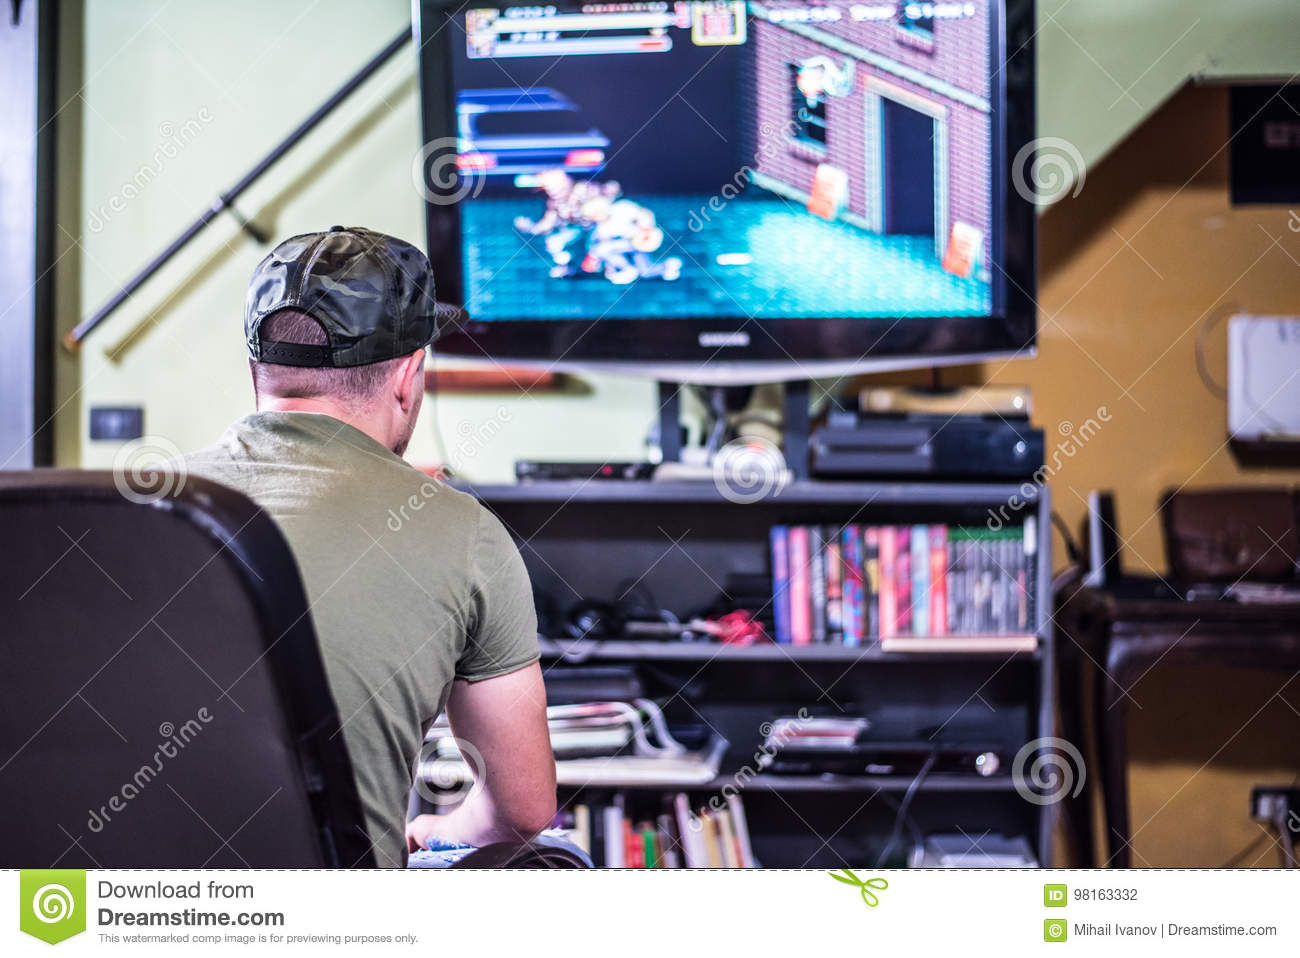 Retro Gamer In Front Of The TV Stock Photo - Image of adult, front